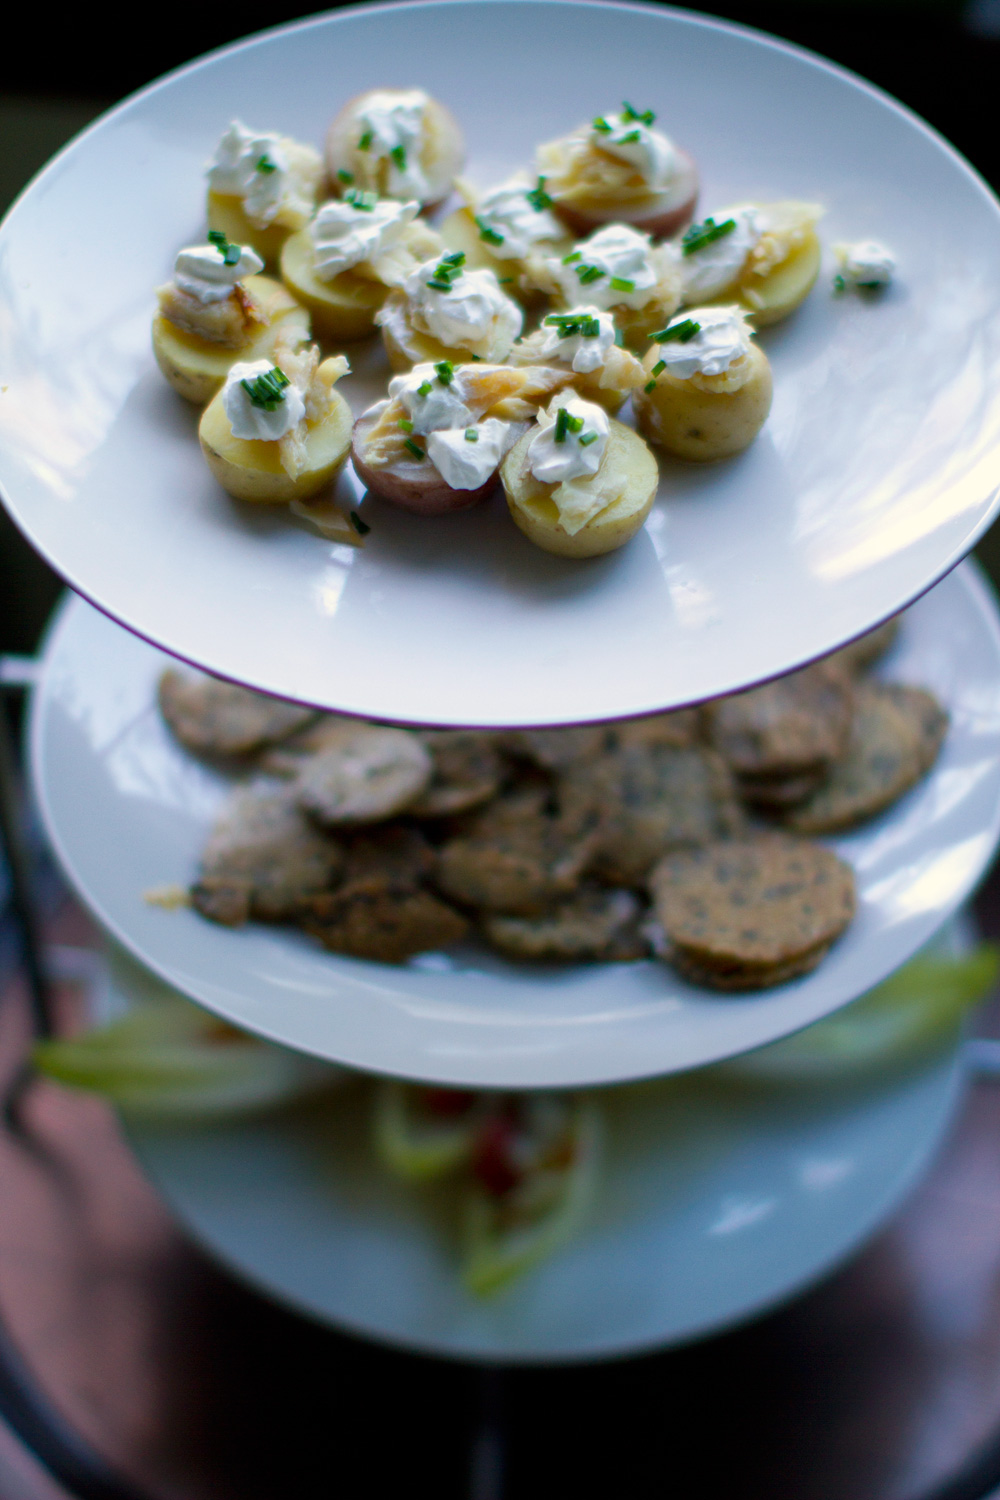 Little bites of yum, smoked trout with sour cream & chives on potato rounds